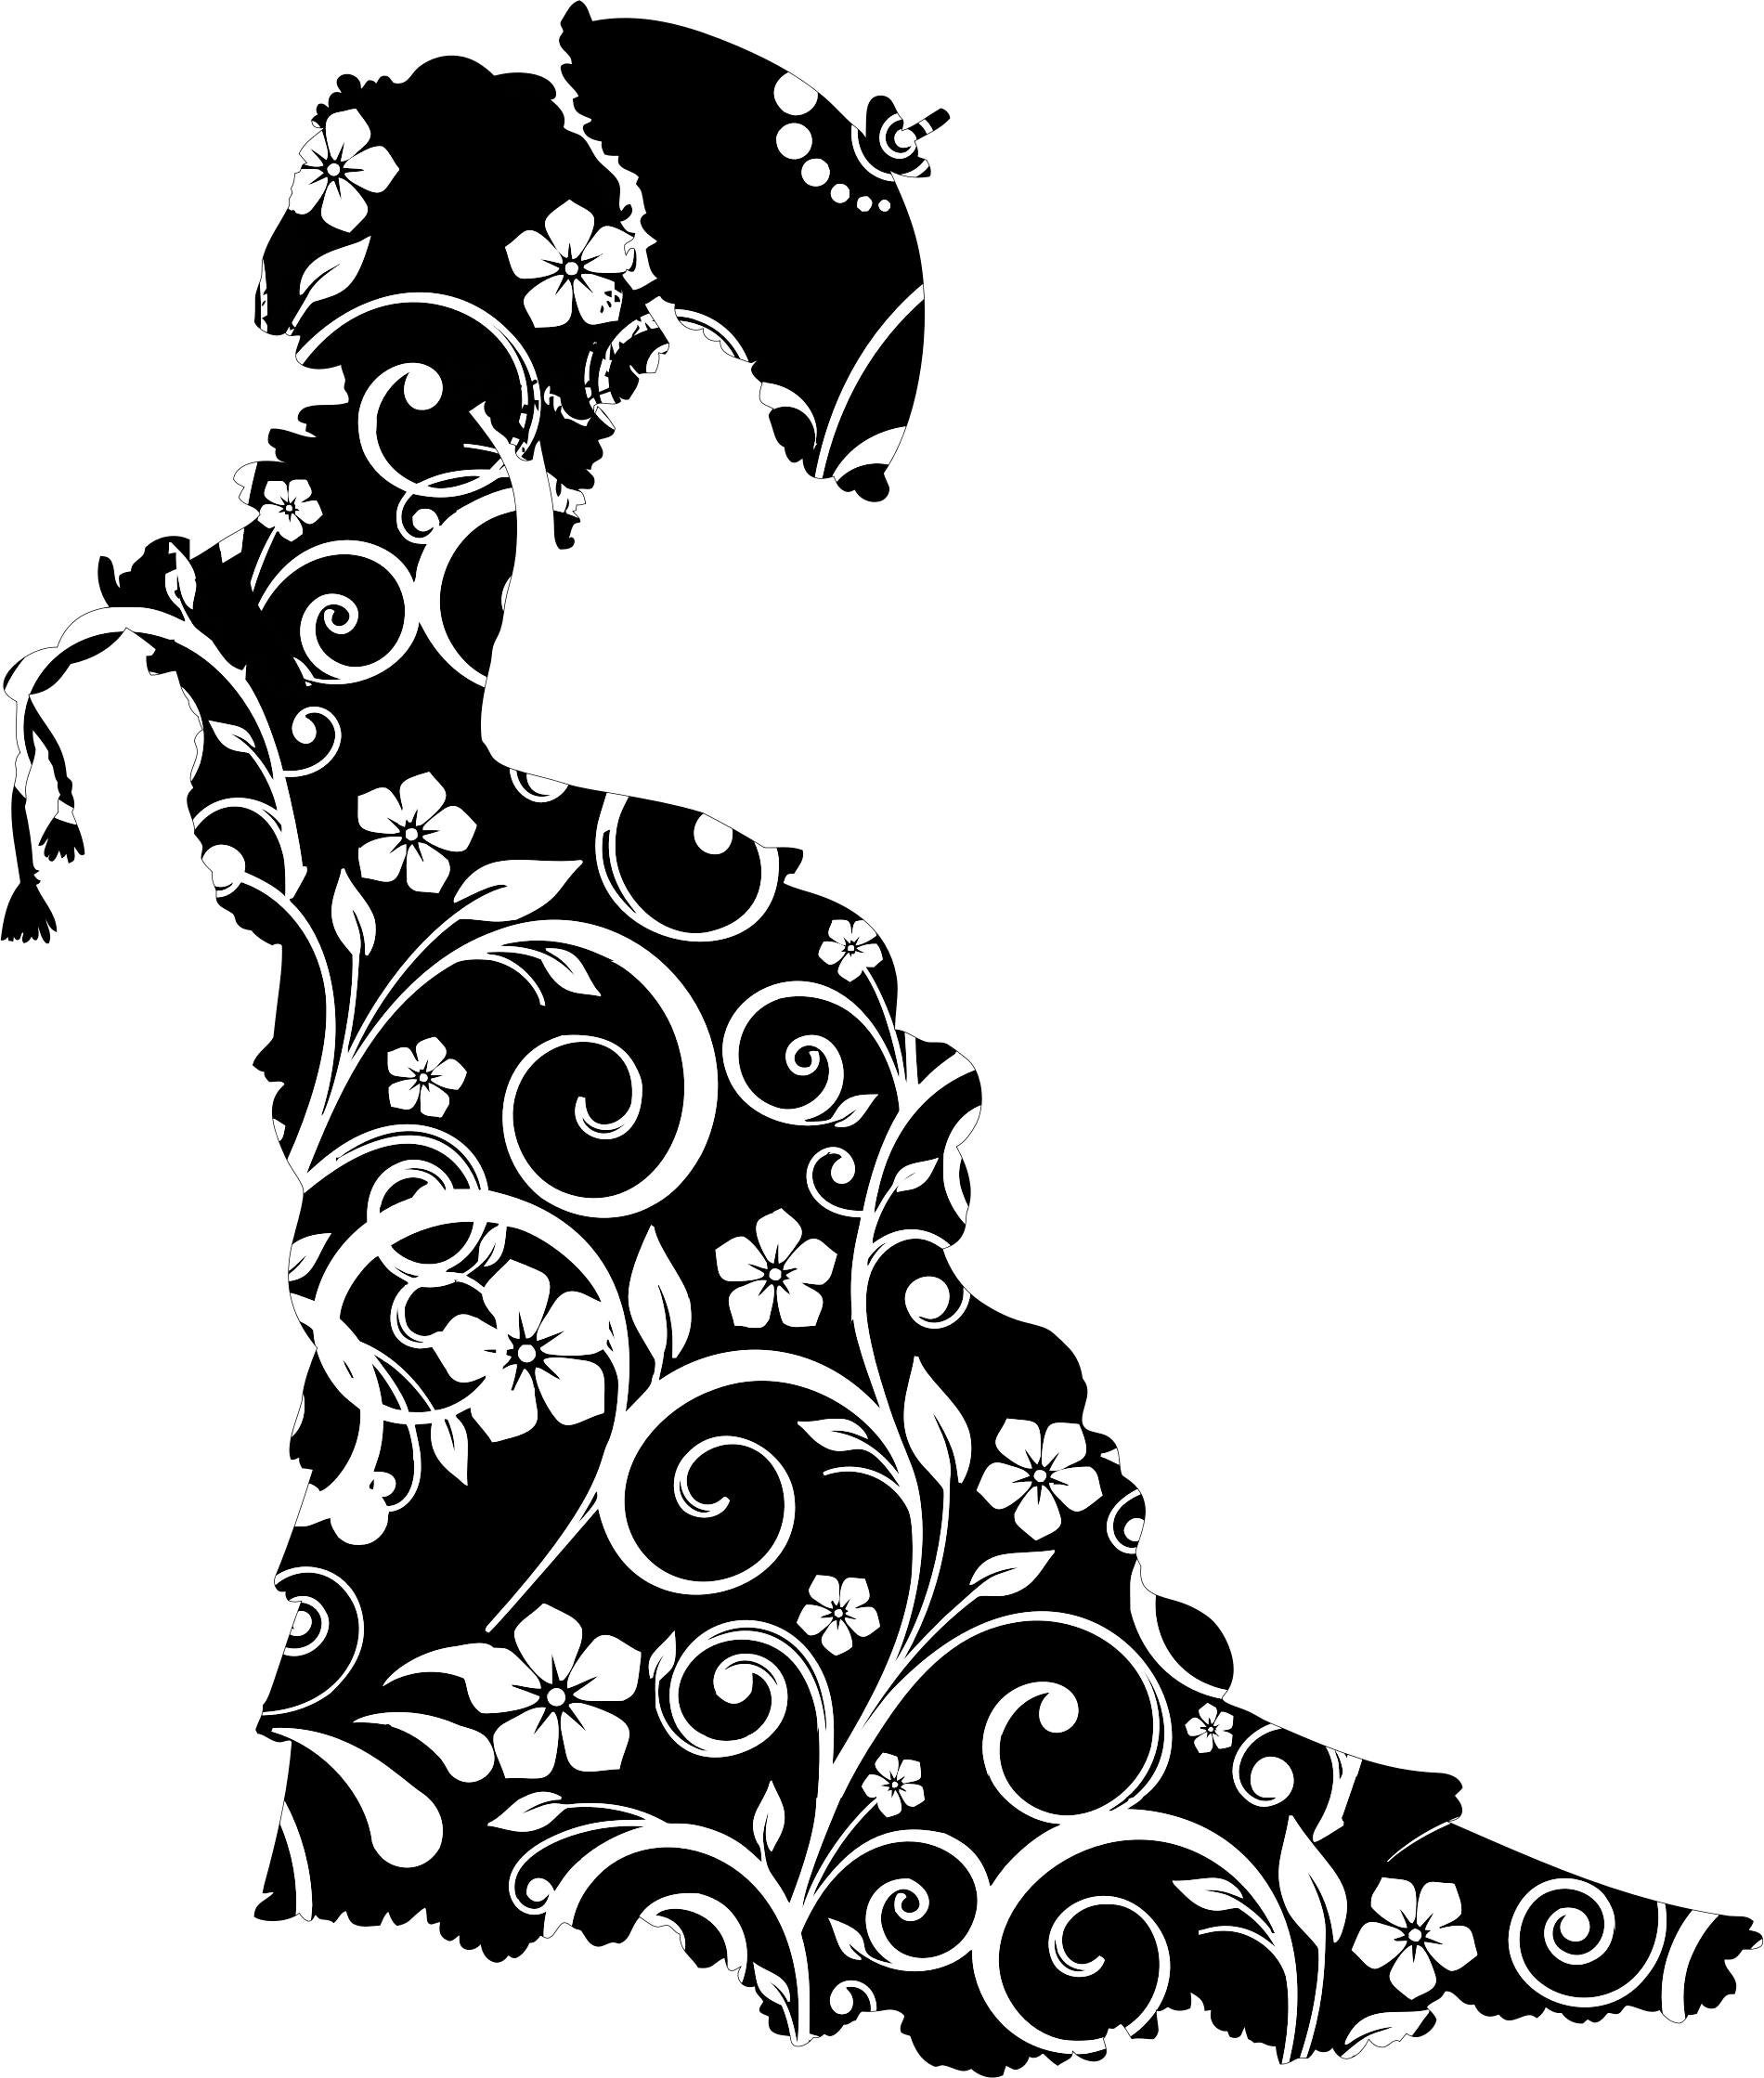 image download Silhouette free on dumielauxepices. Victorian clipart